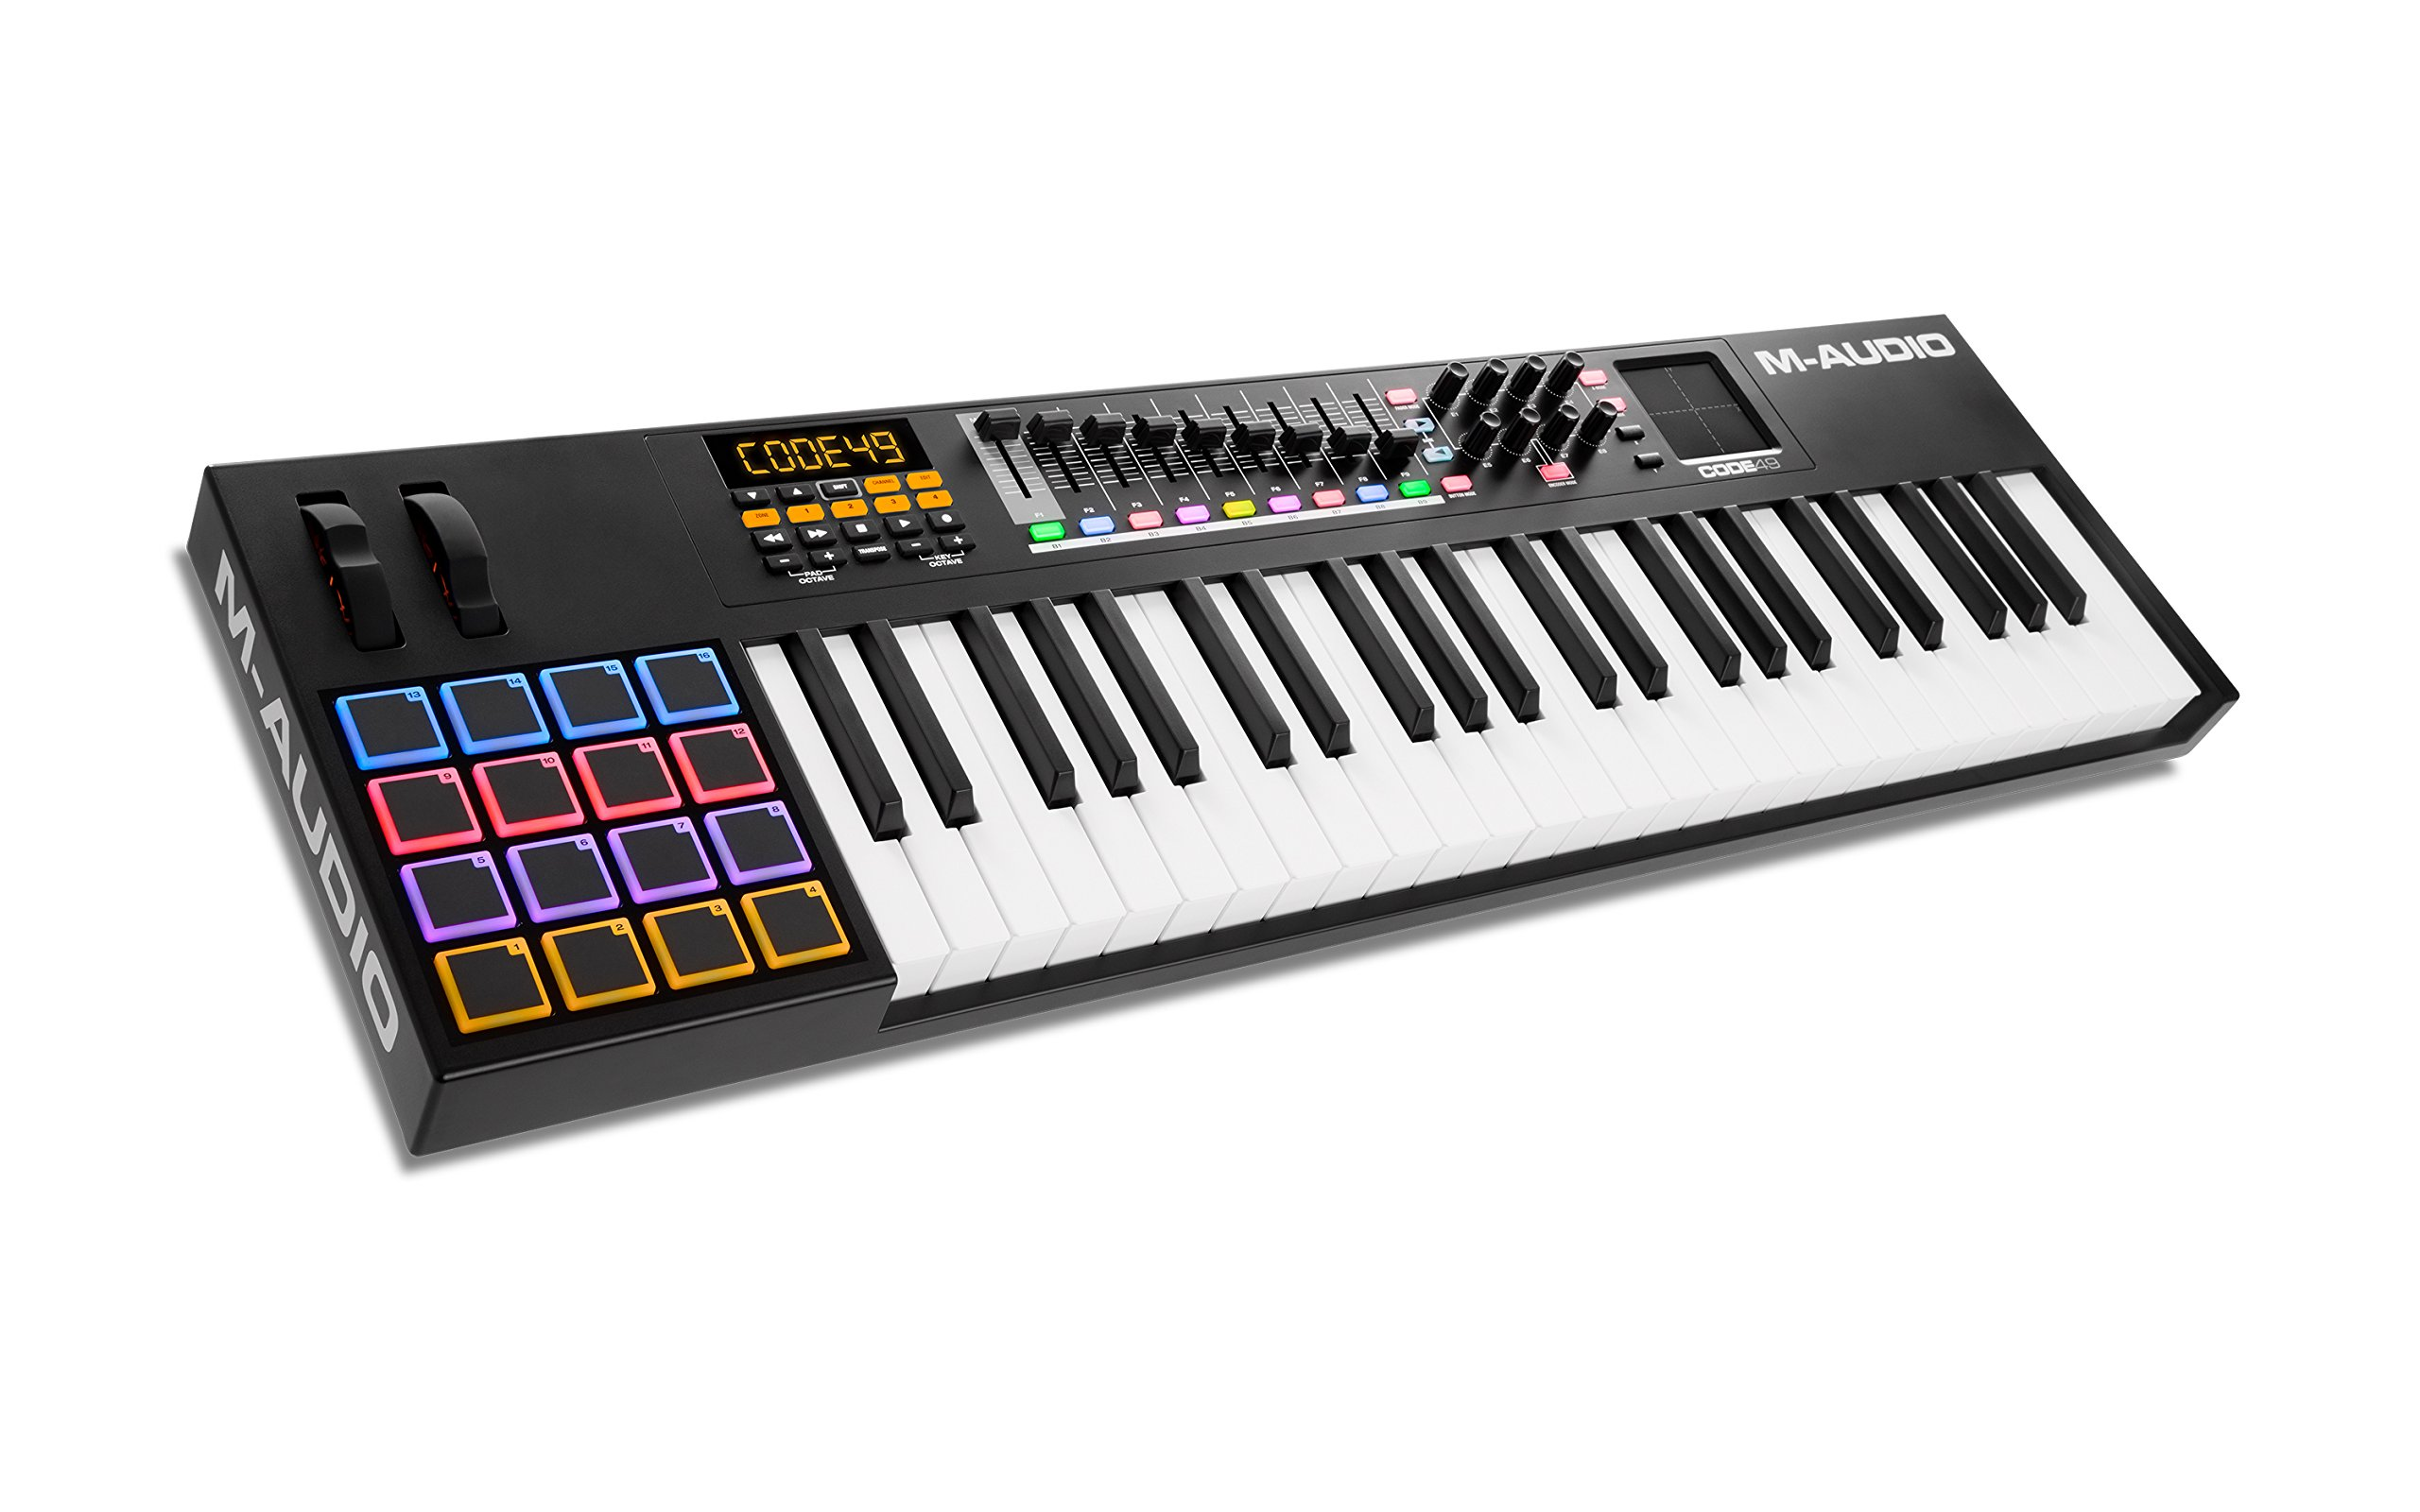 M-Audio Code 49 (Black) | USB MIDI Controller With 49-Key Velocity Sensitive Keybed, X/Y Pad, 16 Velocity Sensitive Trigger Pads & A Full-Consignment of Production/Performance Ready Controls by M-Audio